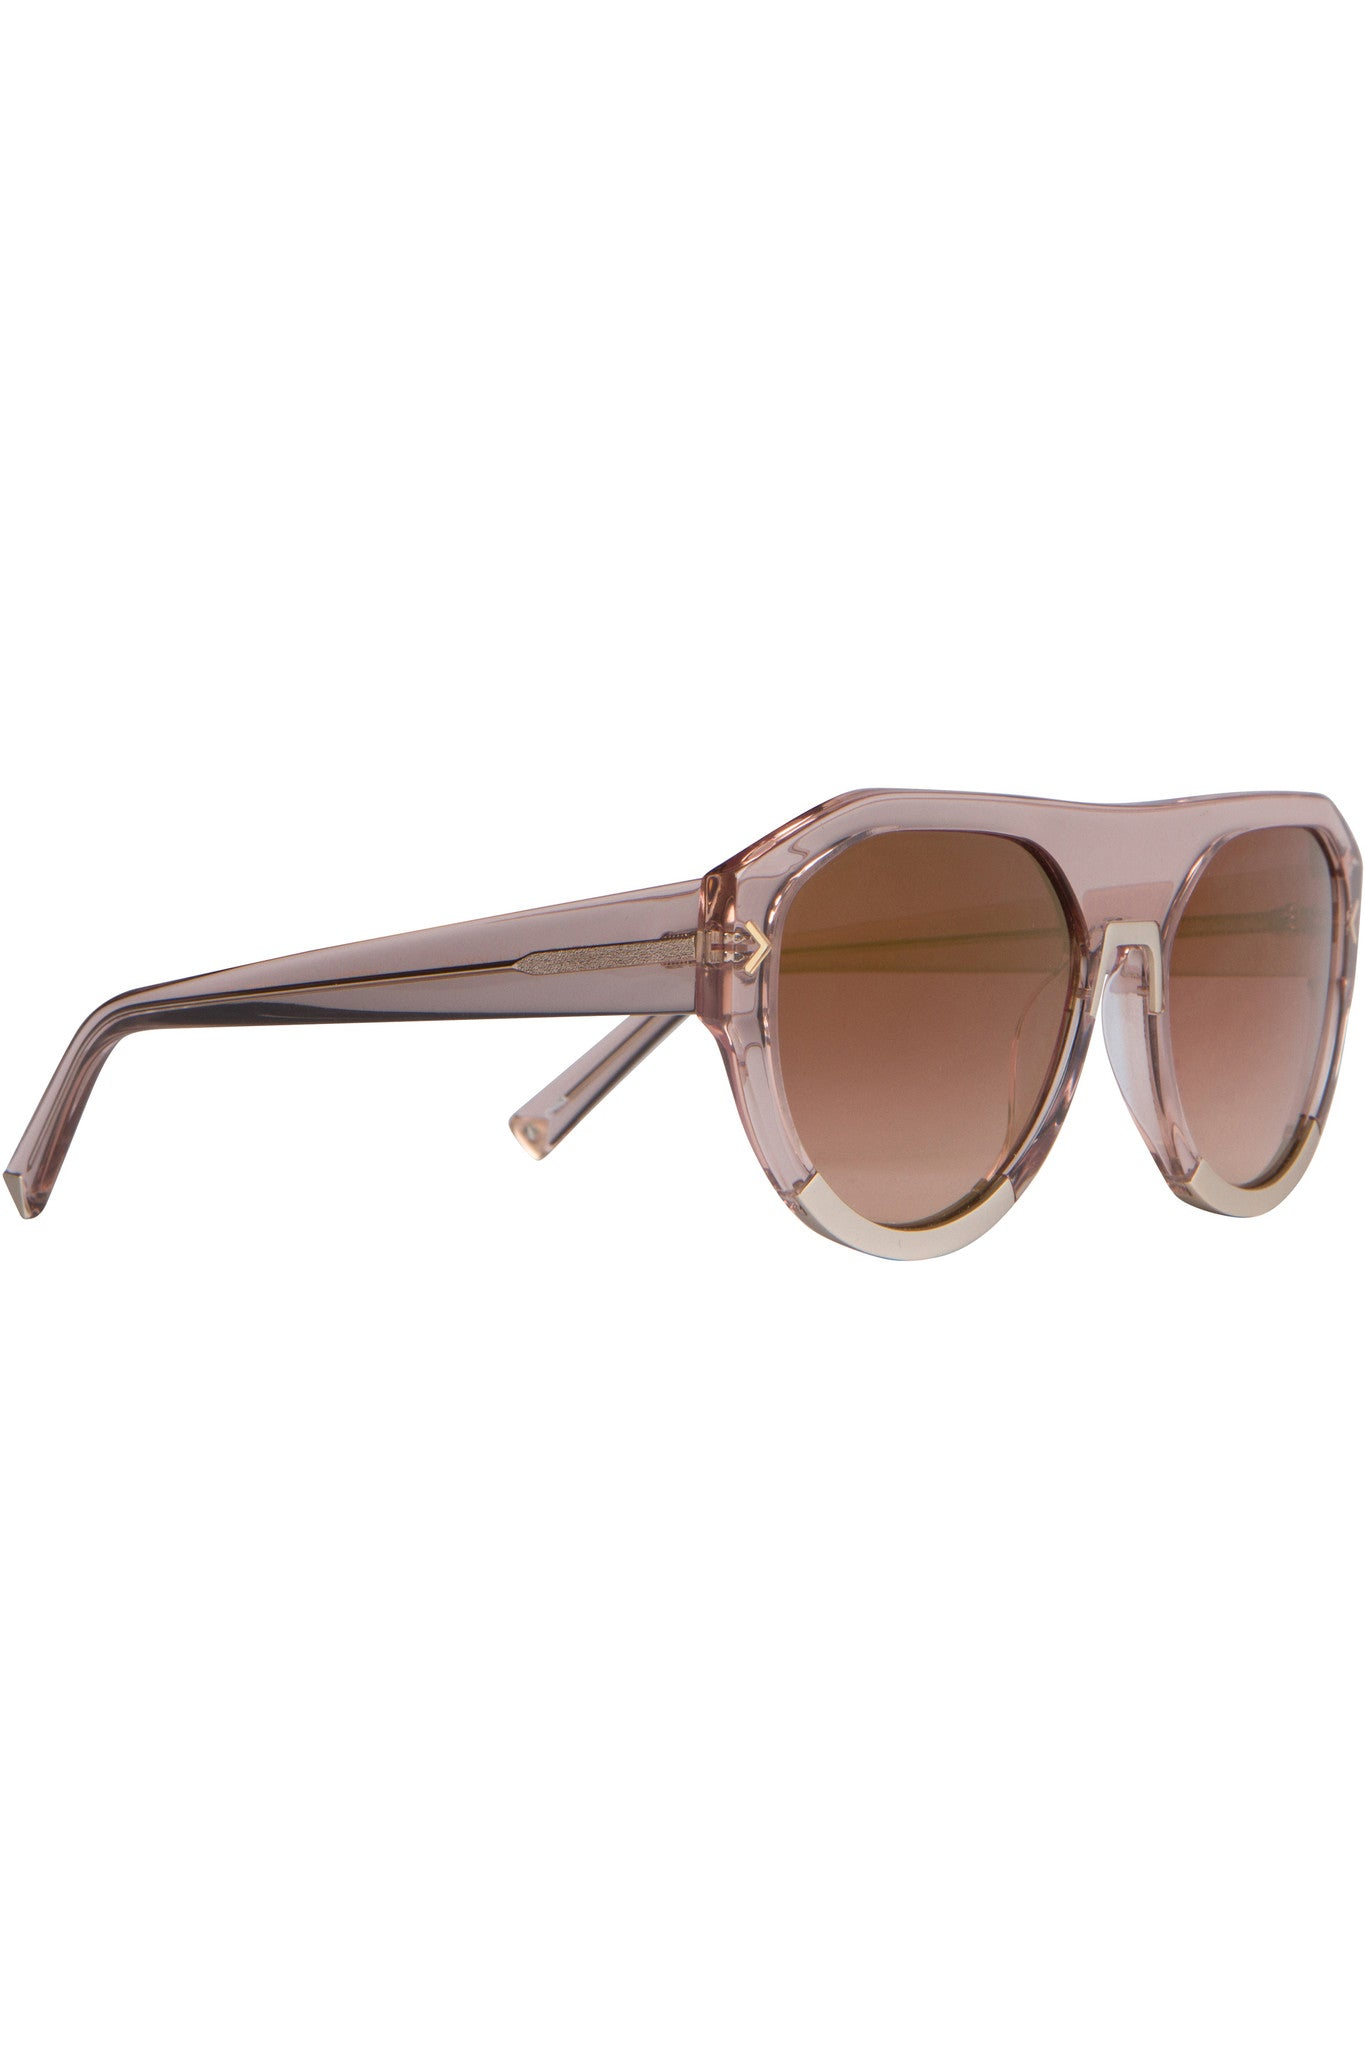 MERCY BLUSH CRYSTAL AND MATTE SATIN GOLD METAL SUNGLASSES